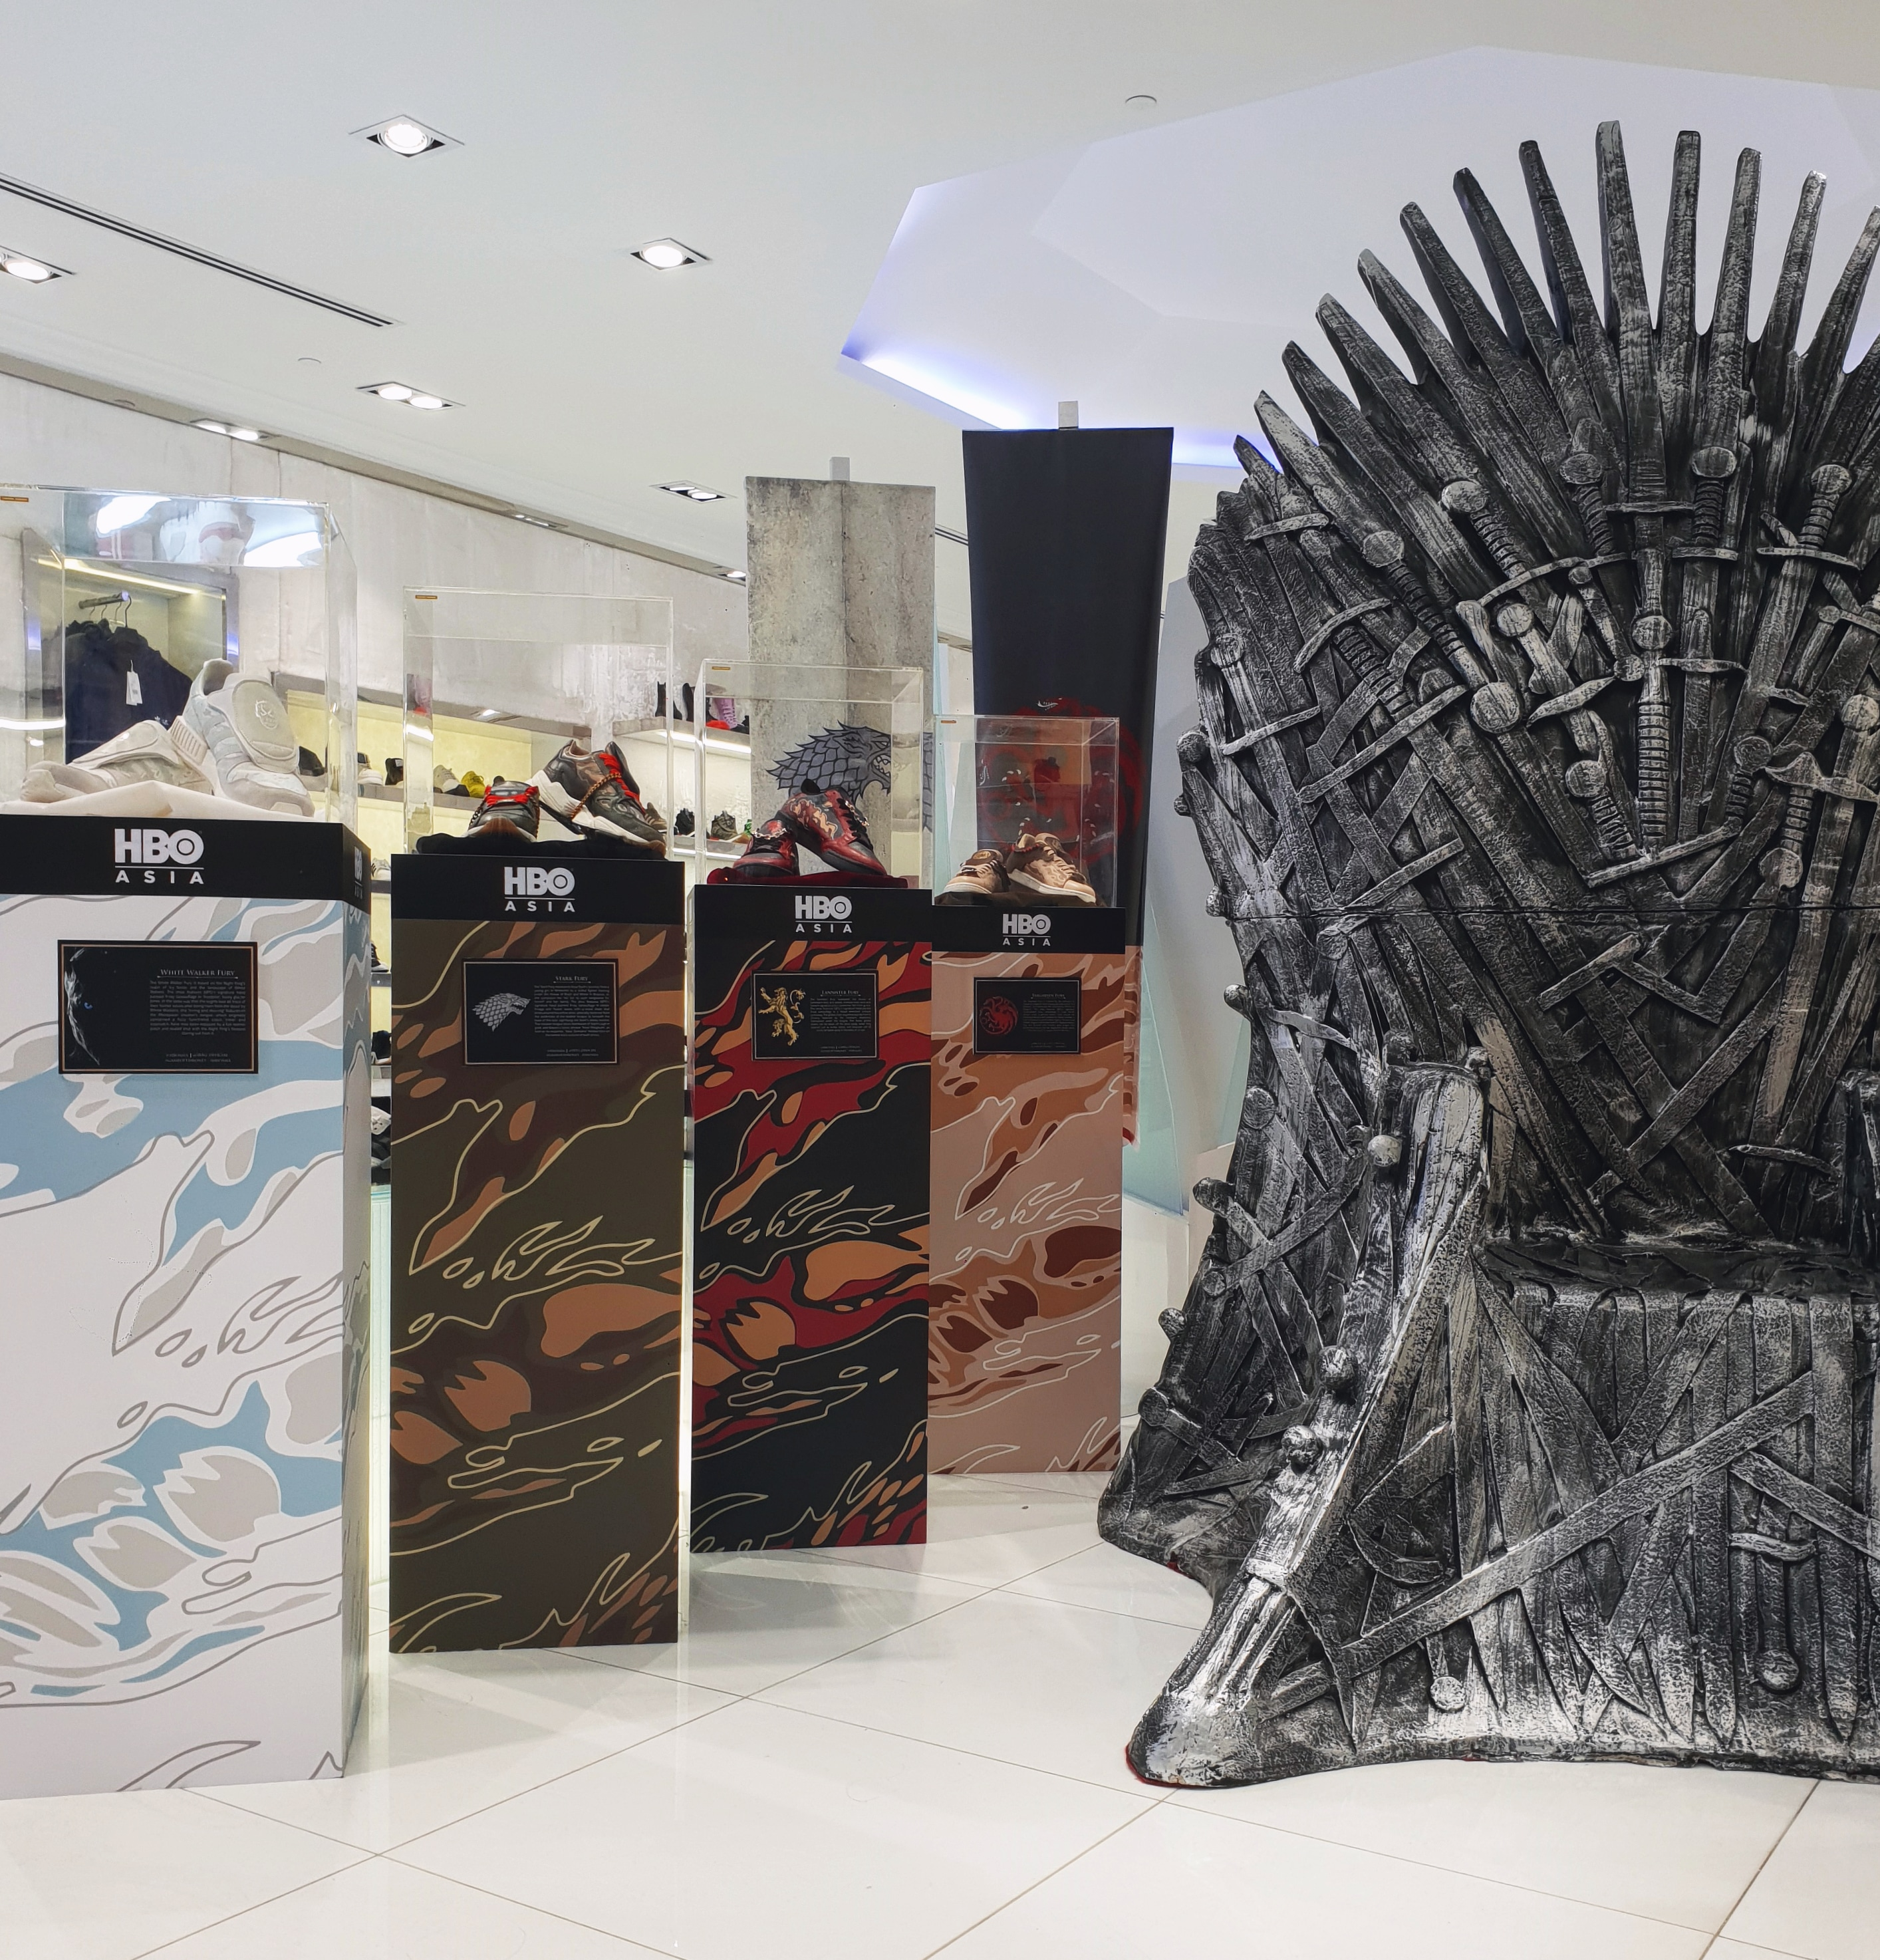 GOT Sneakers on display with Iron Throne